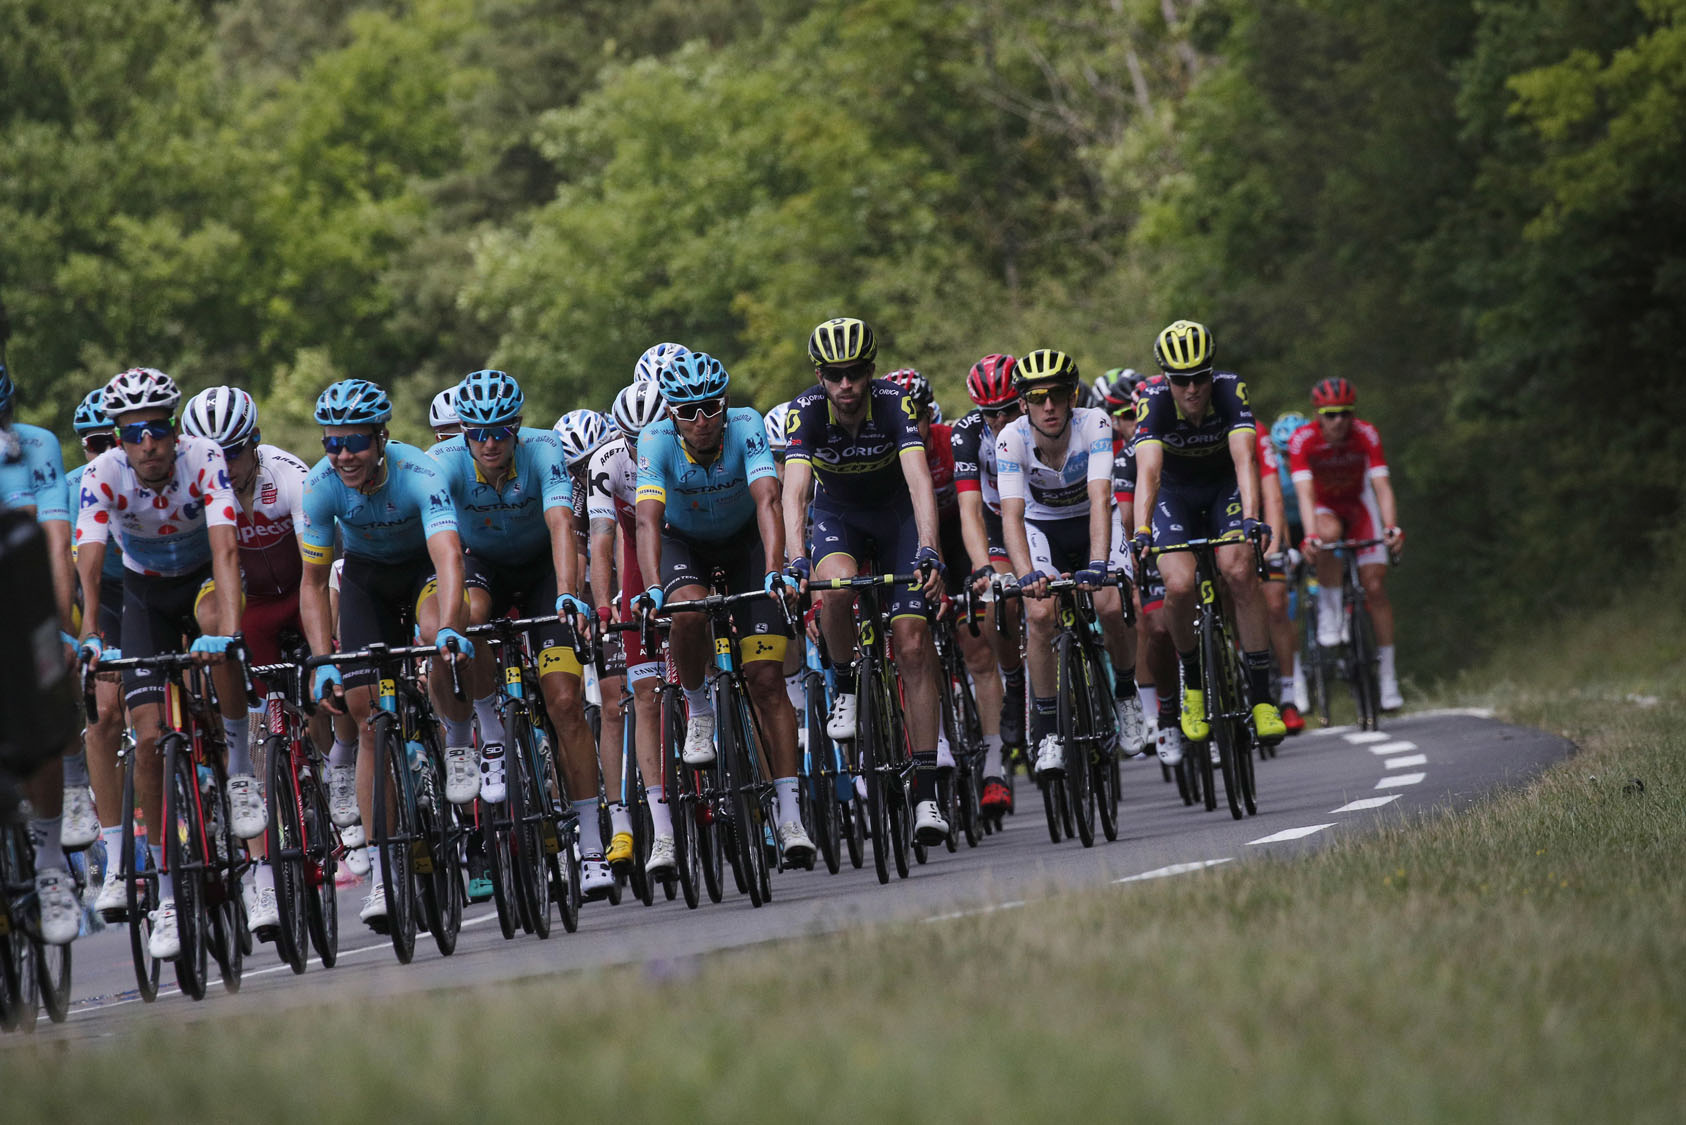 Photos from the Tour de France cycling race